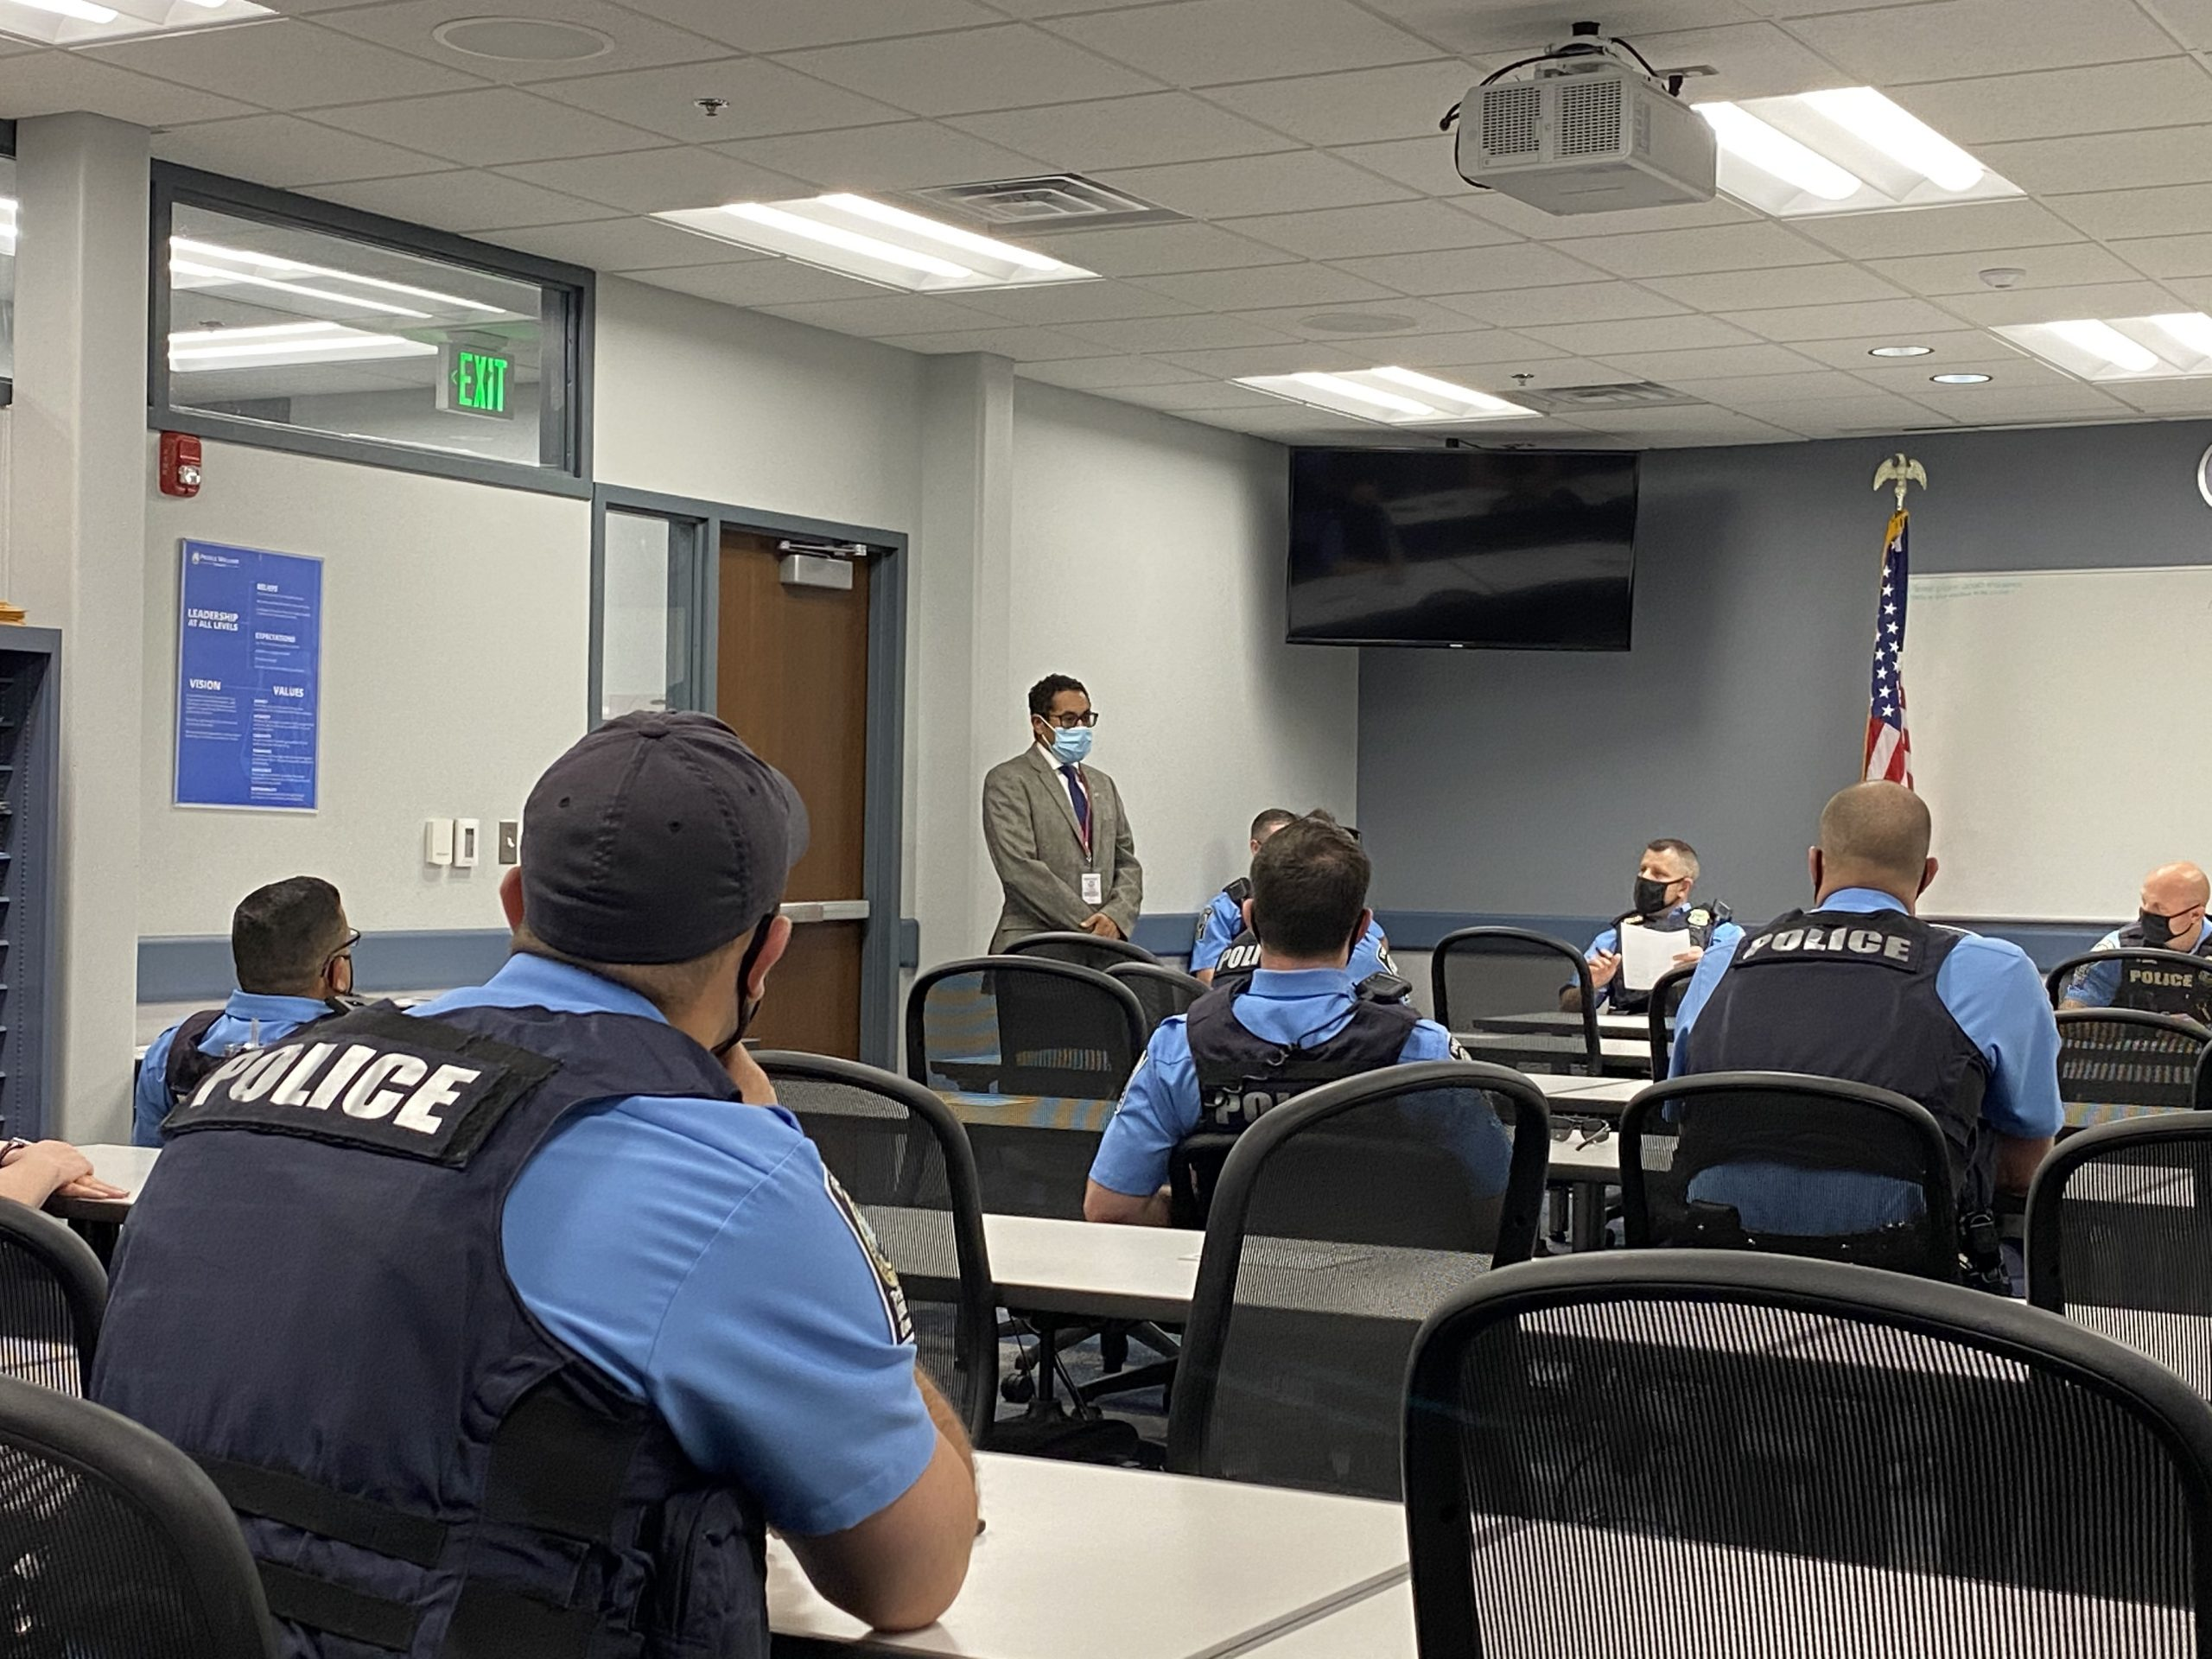 Supervisor Boddye answers officers' questions during Roll Call on Nov 4 2020